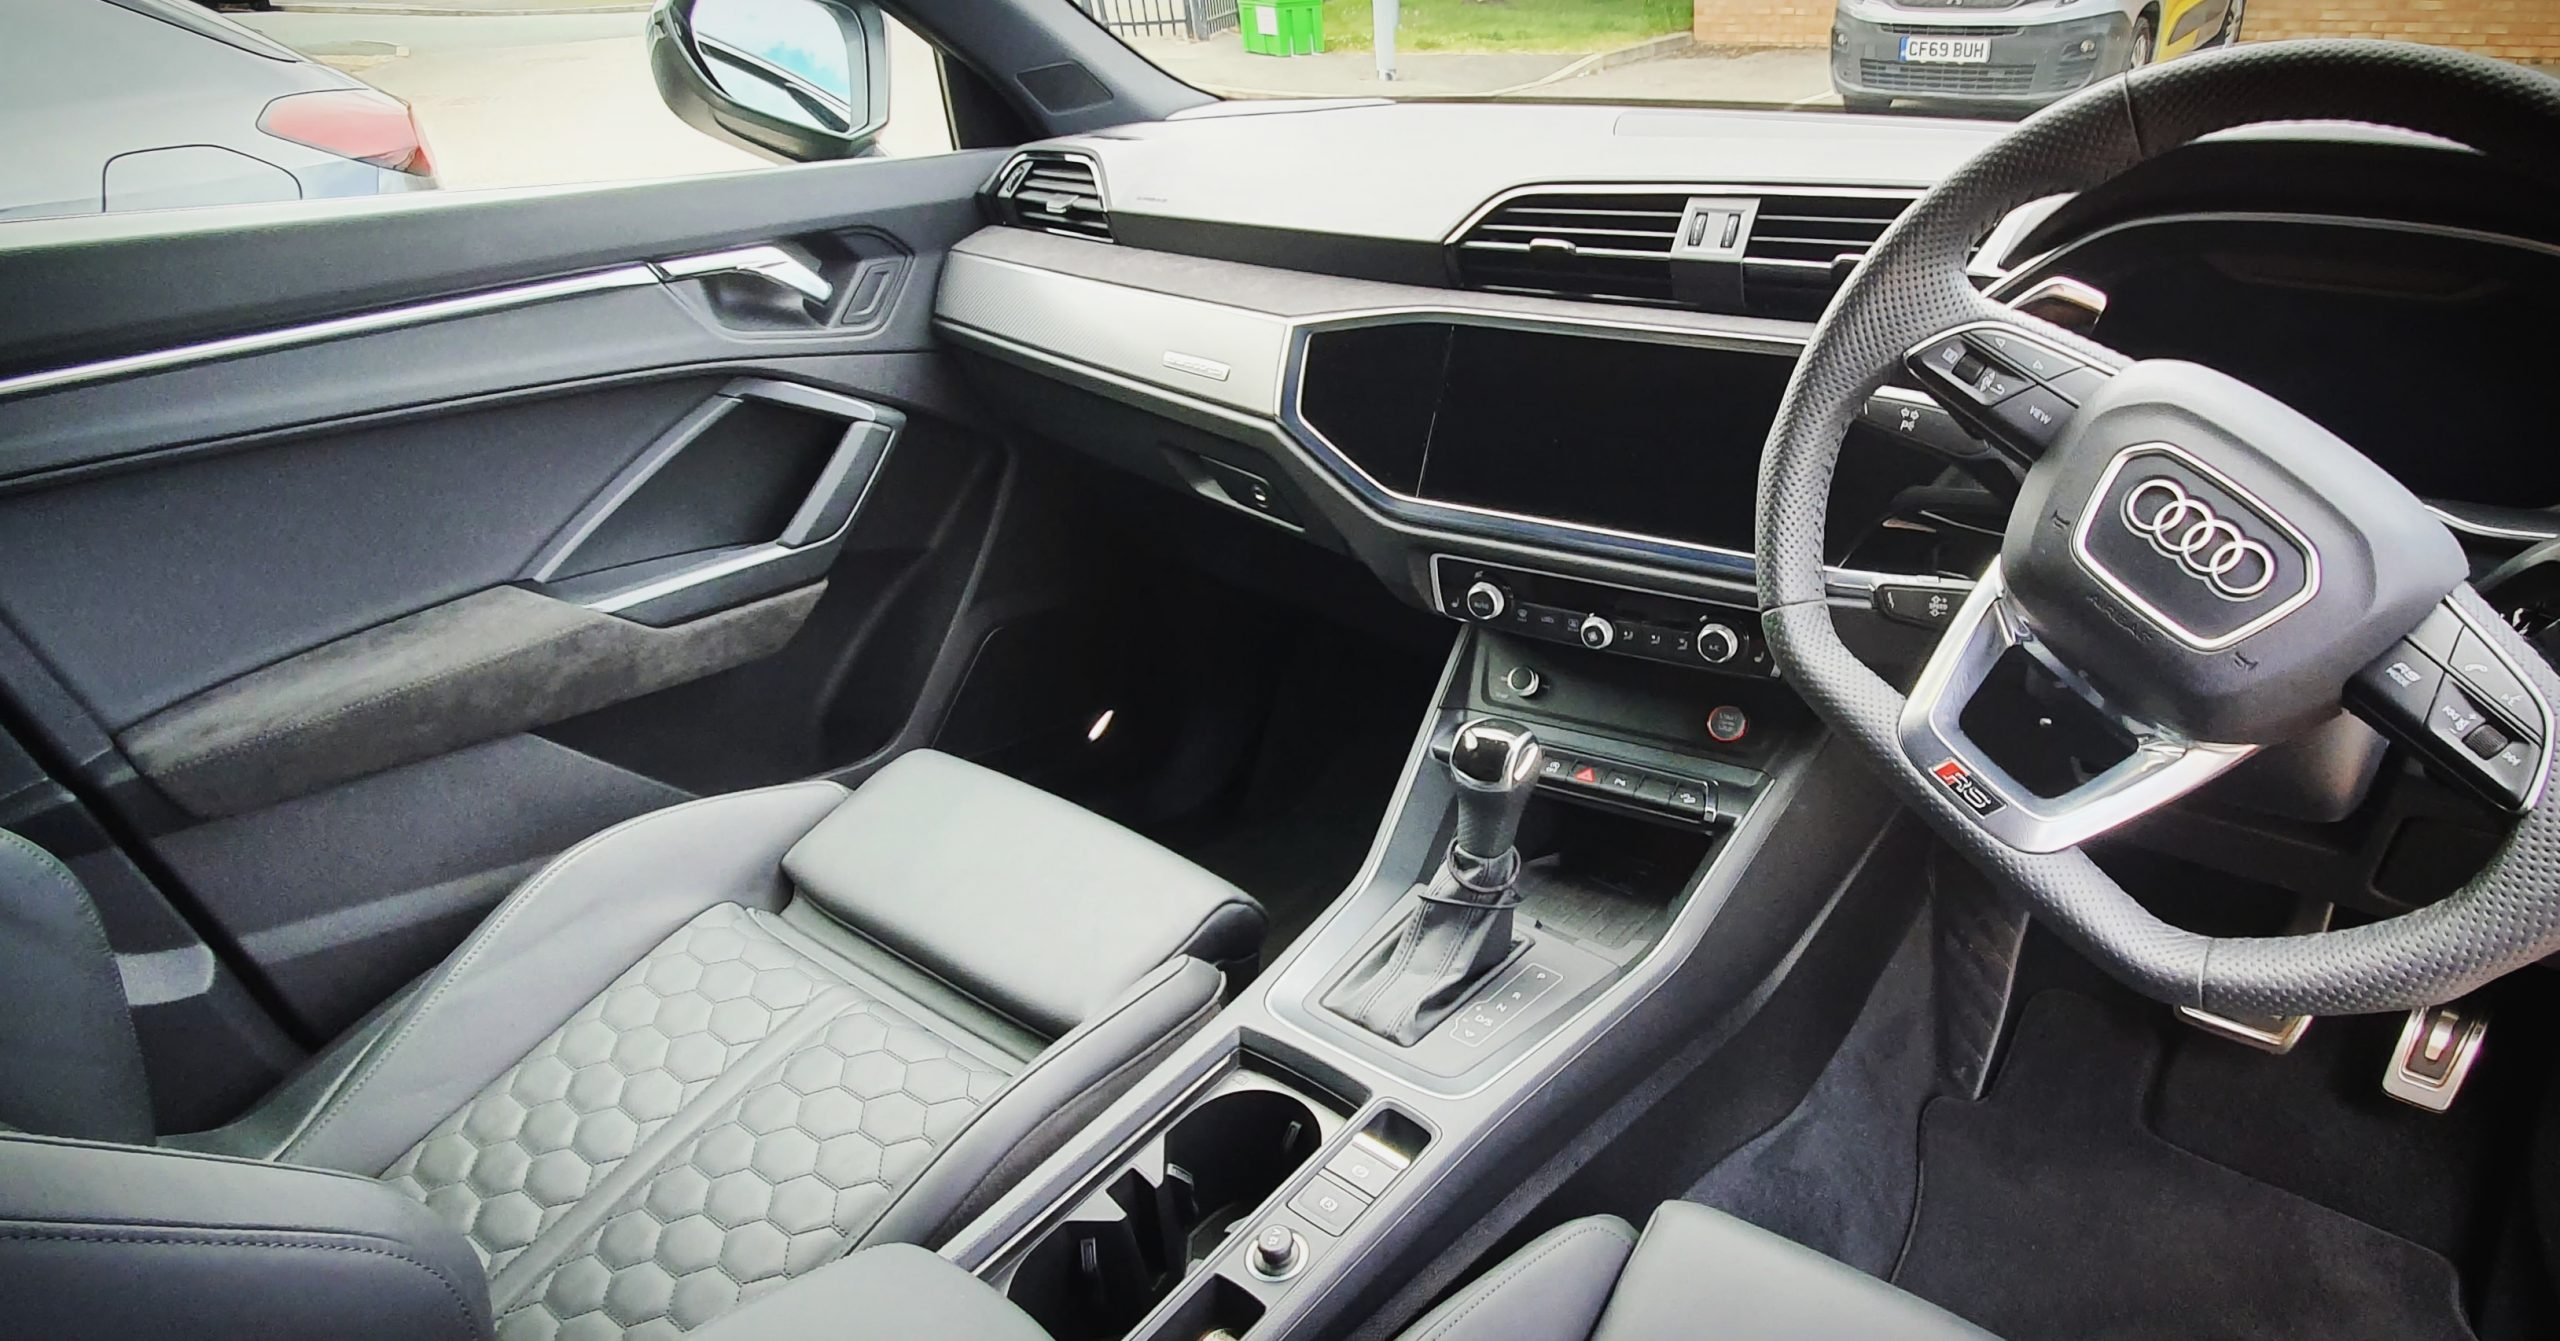 Interior Cleaning for Audi